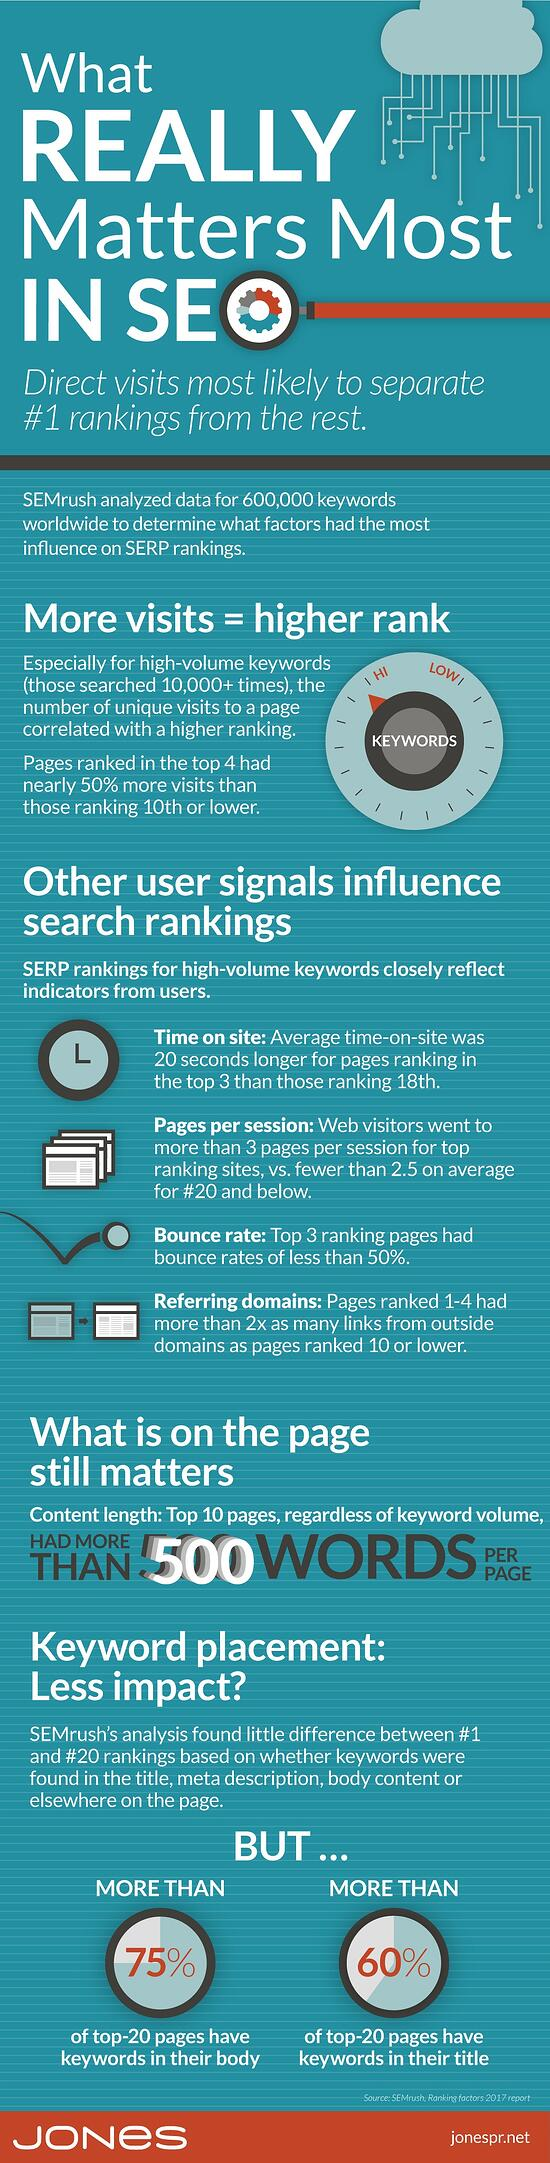 jones-infographic-top-SERP-influences.jpg